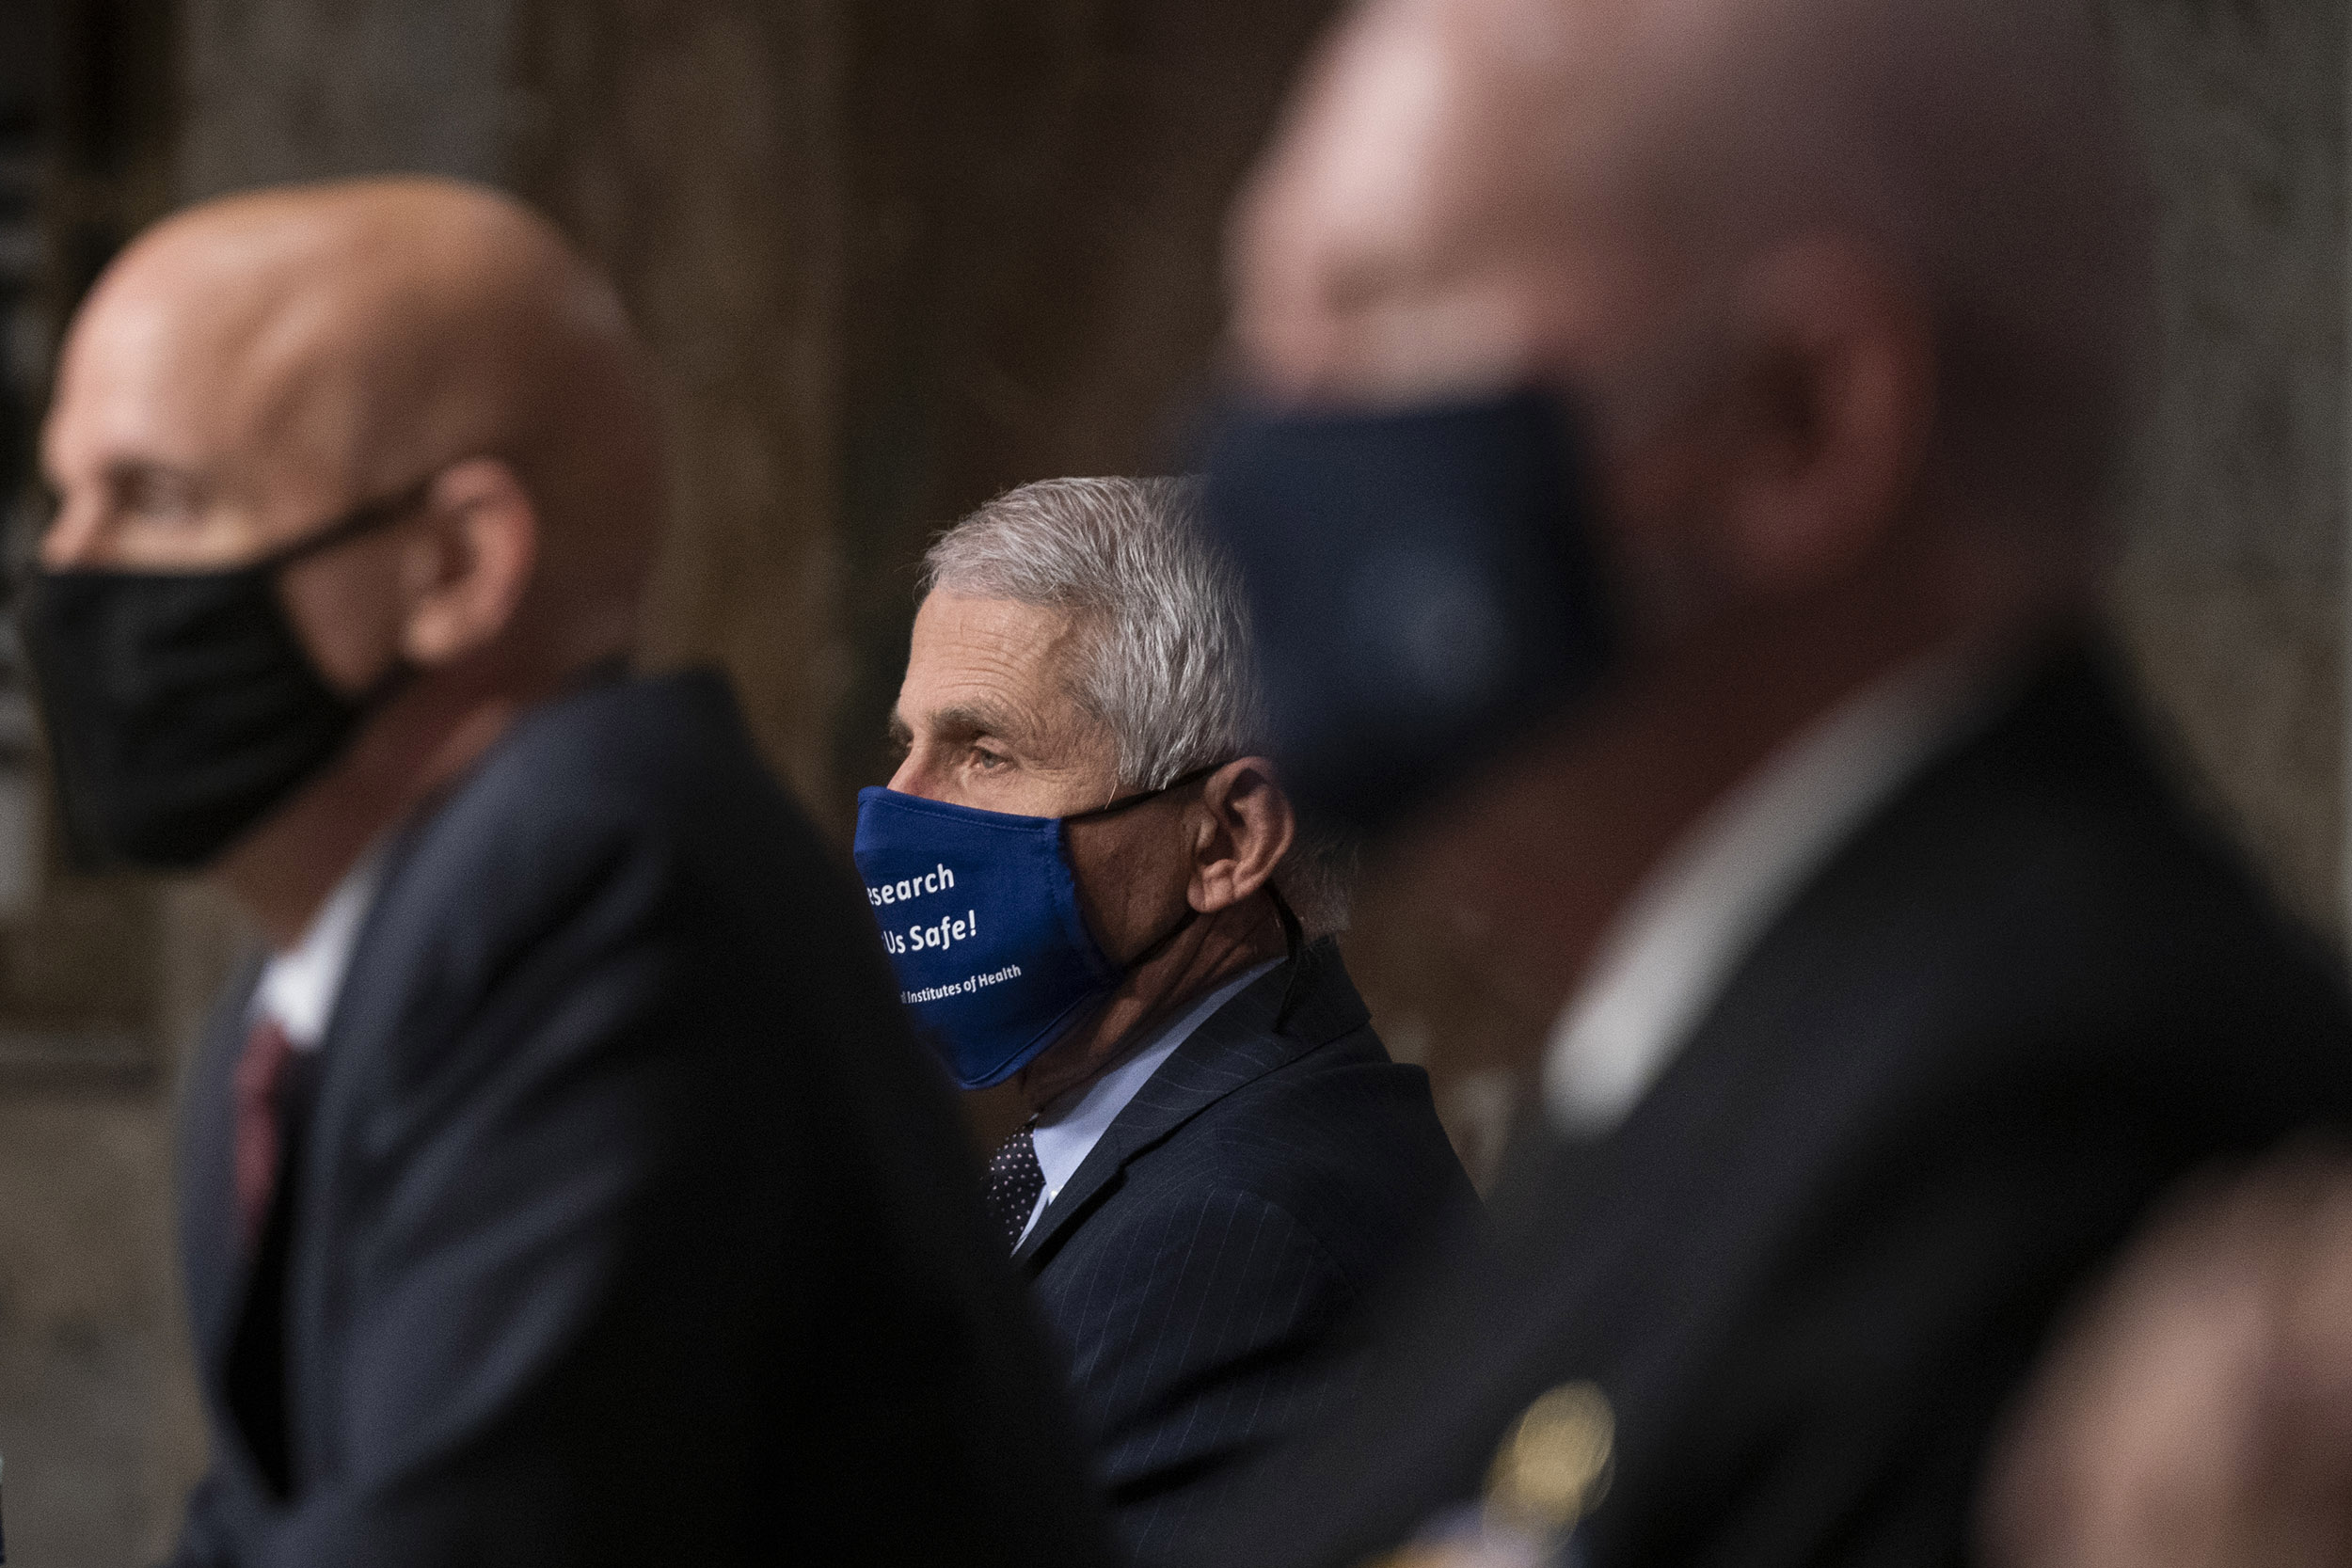 Dr. Anthony Fauci, director of the National Institute of Allergy and Infectious Diseases, listens to questioning during a committee hearing on September 23, in Washington, DC.